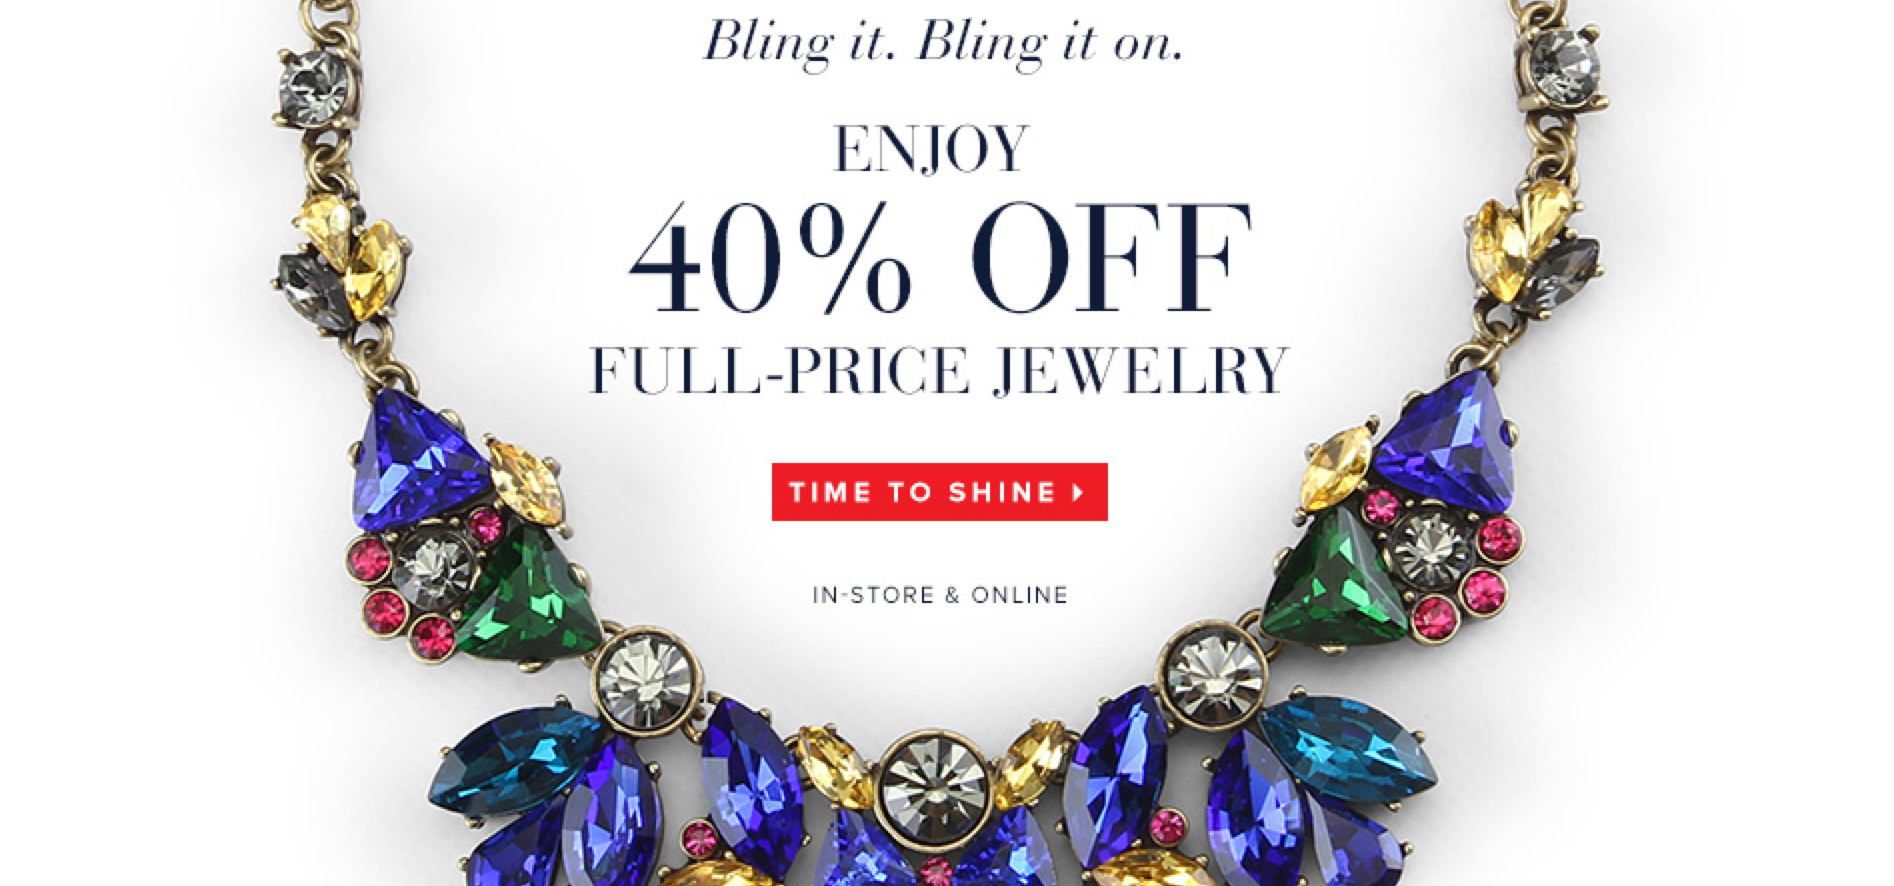 tradition made its ever for boasts history been jewelry jewellery exceptional in have beginnings online angeletti their over creations design since an pure of italian sale from years